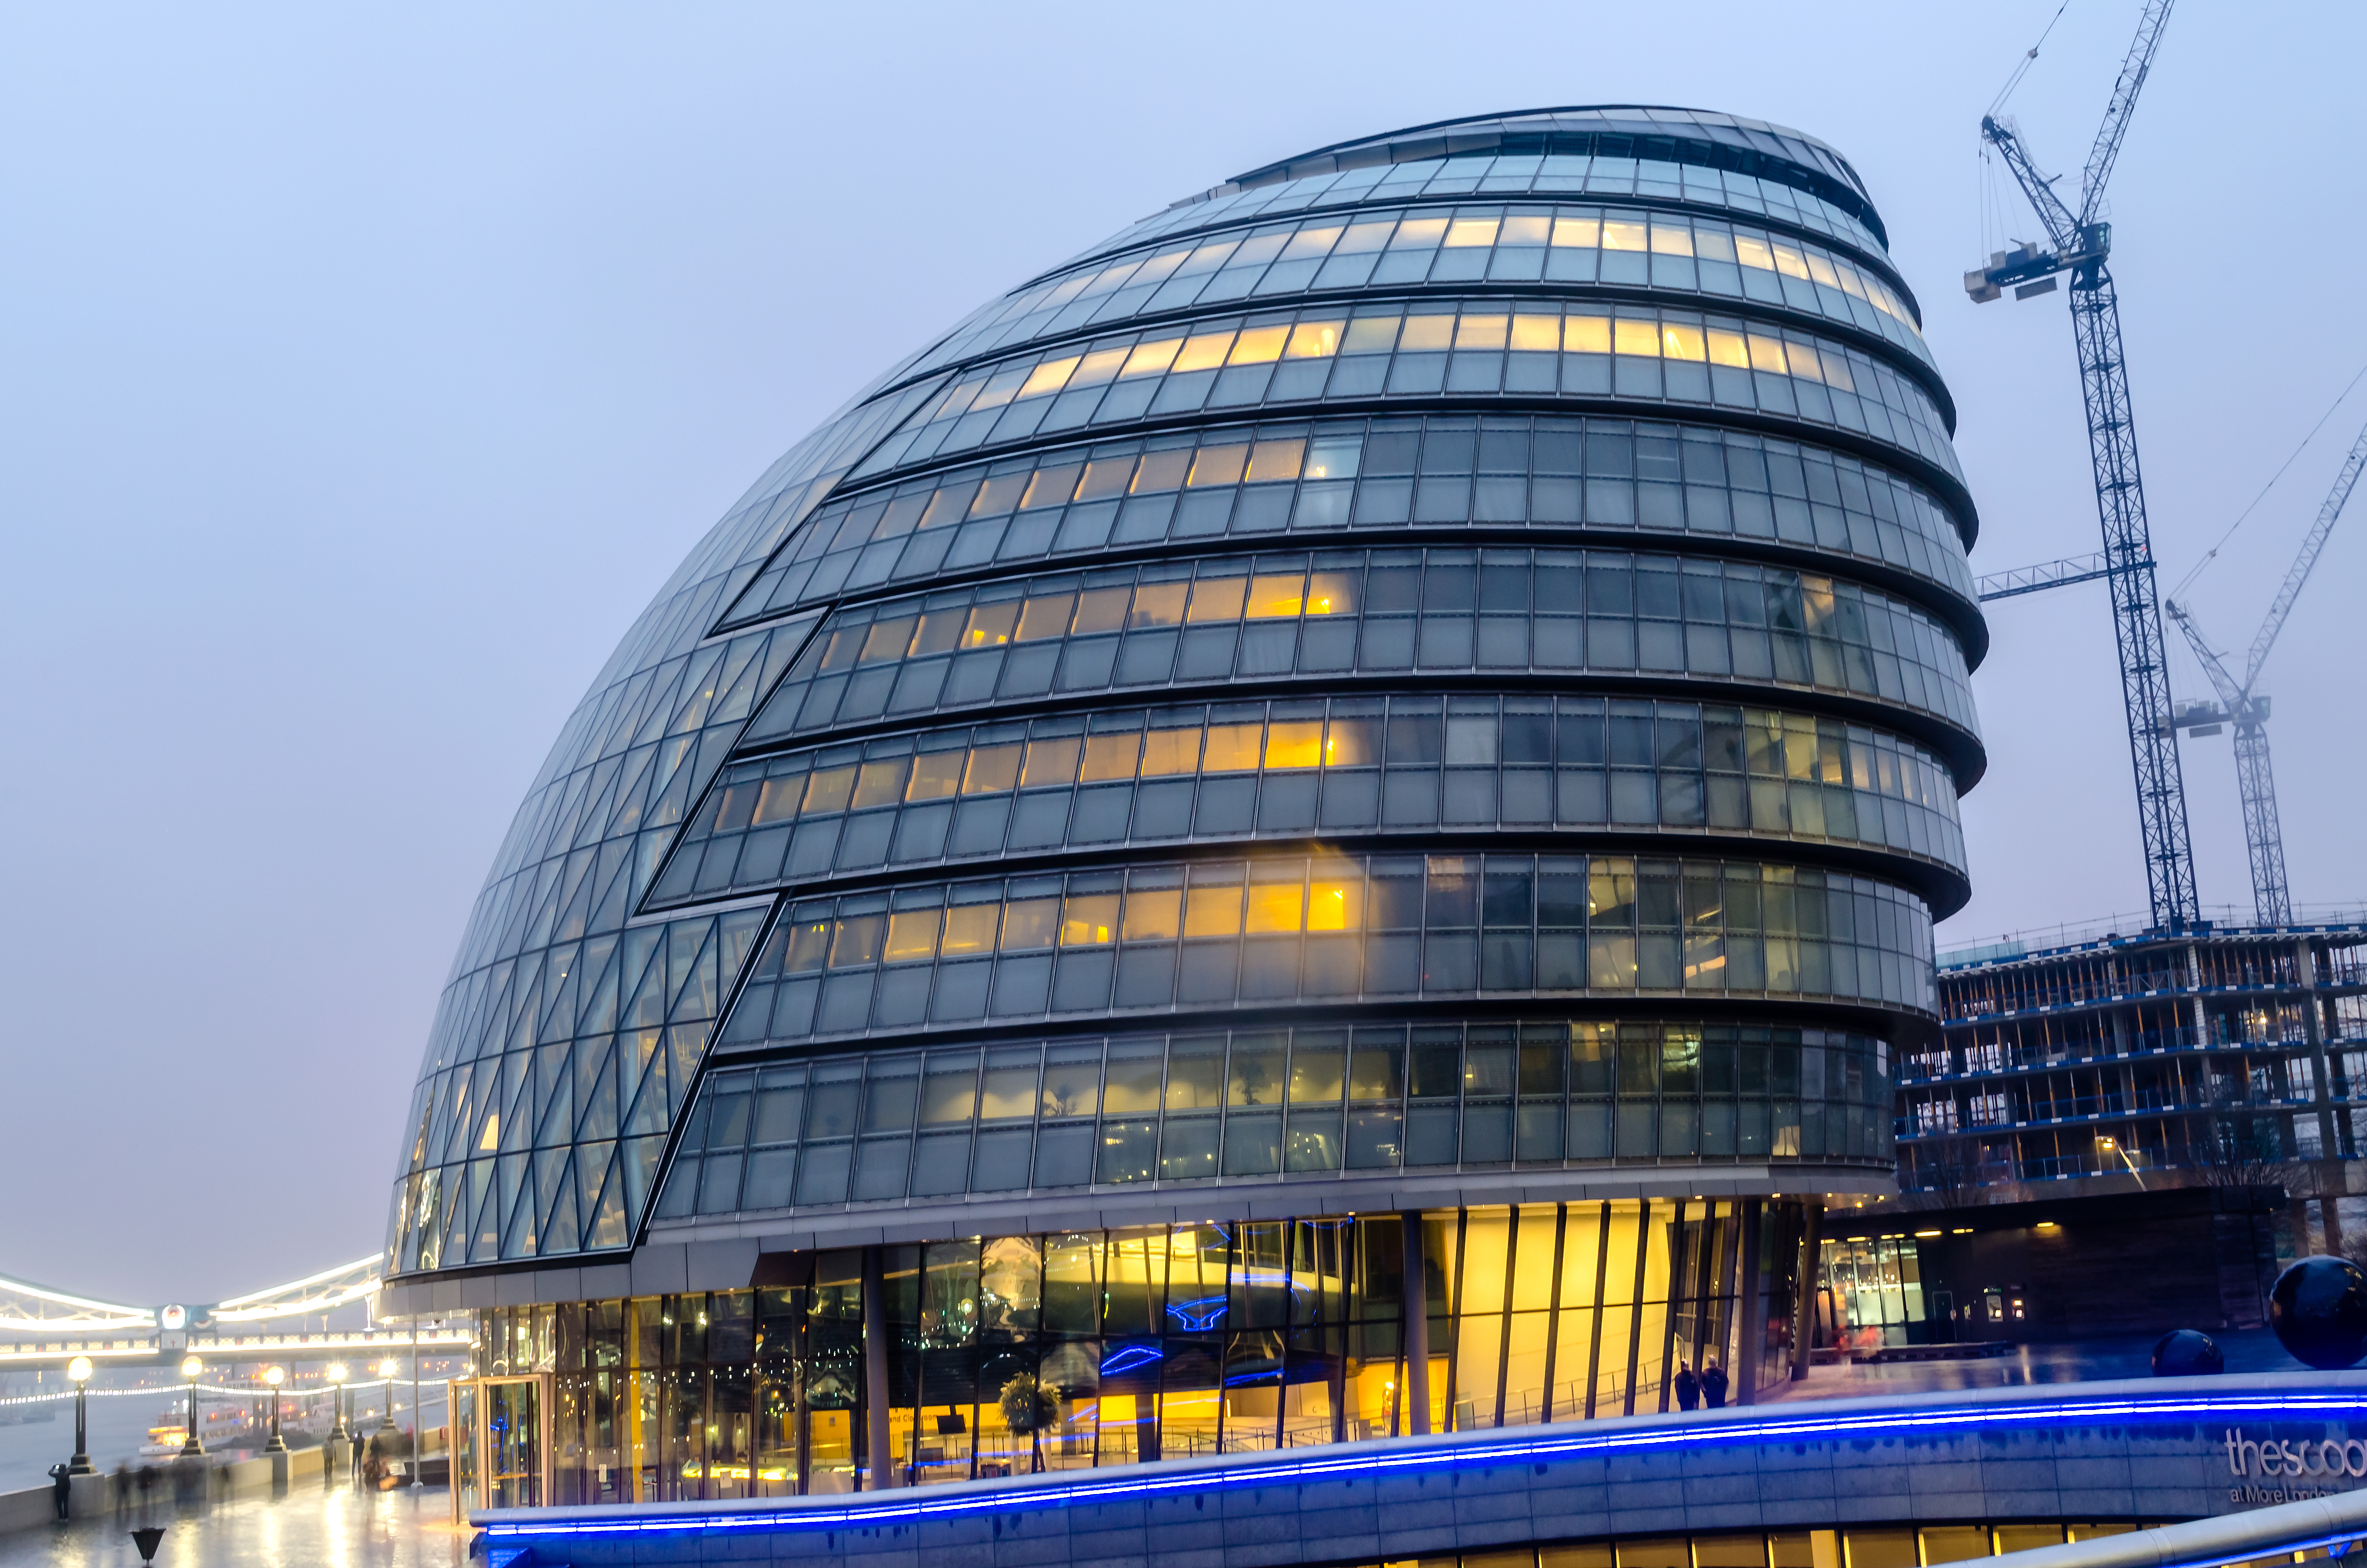 City Hall and the contemporary London